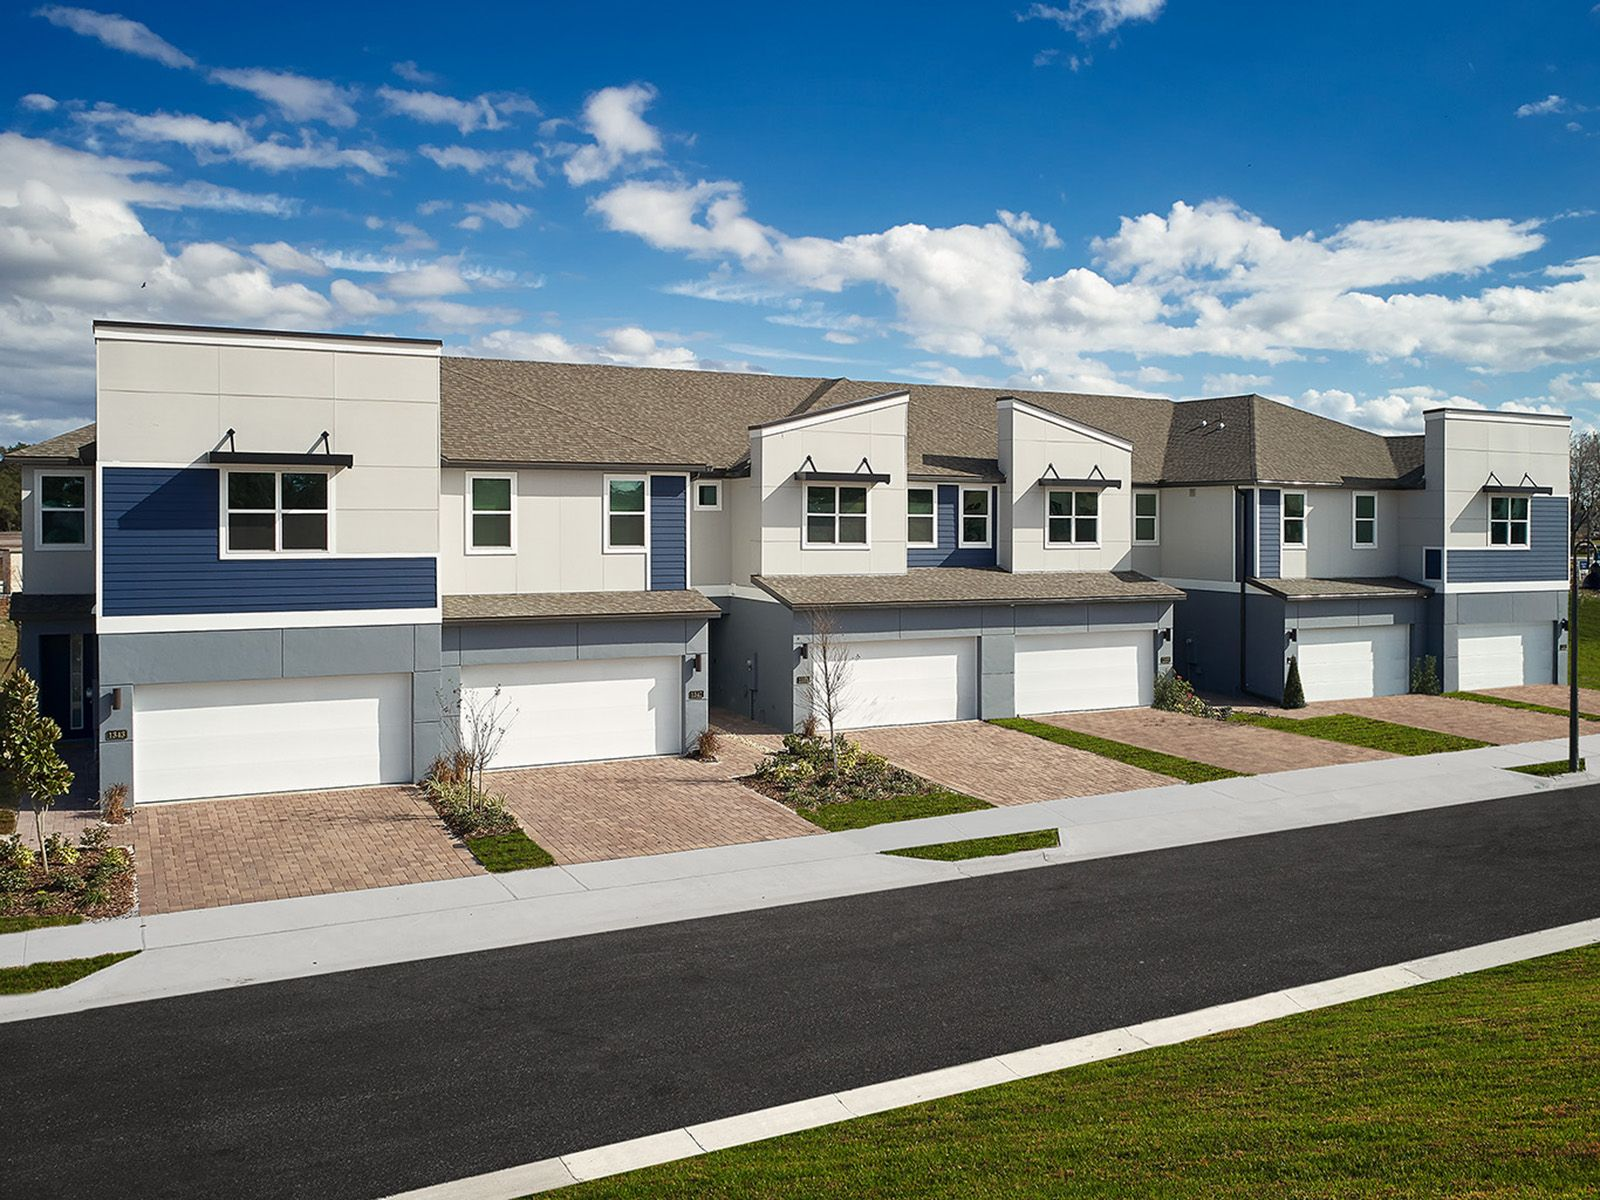 Hawks Crest Townhomes,32792